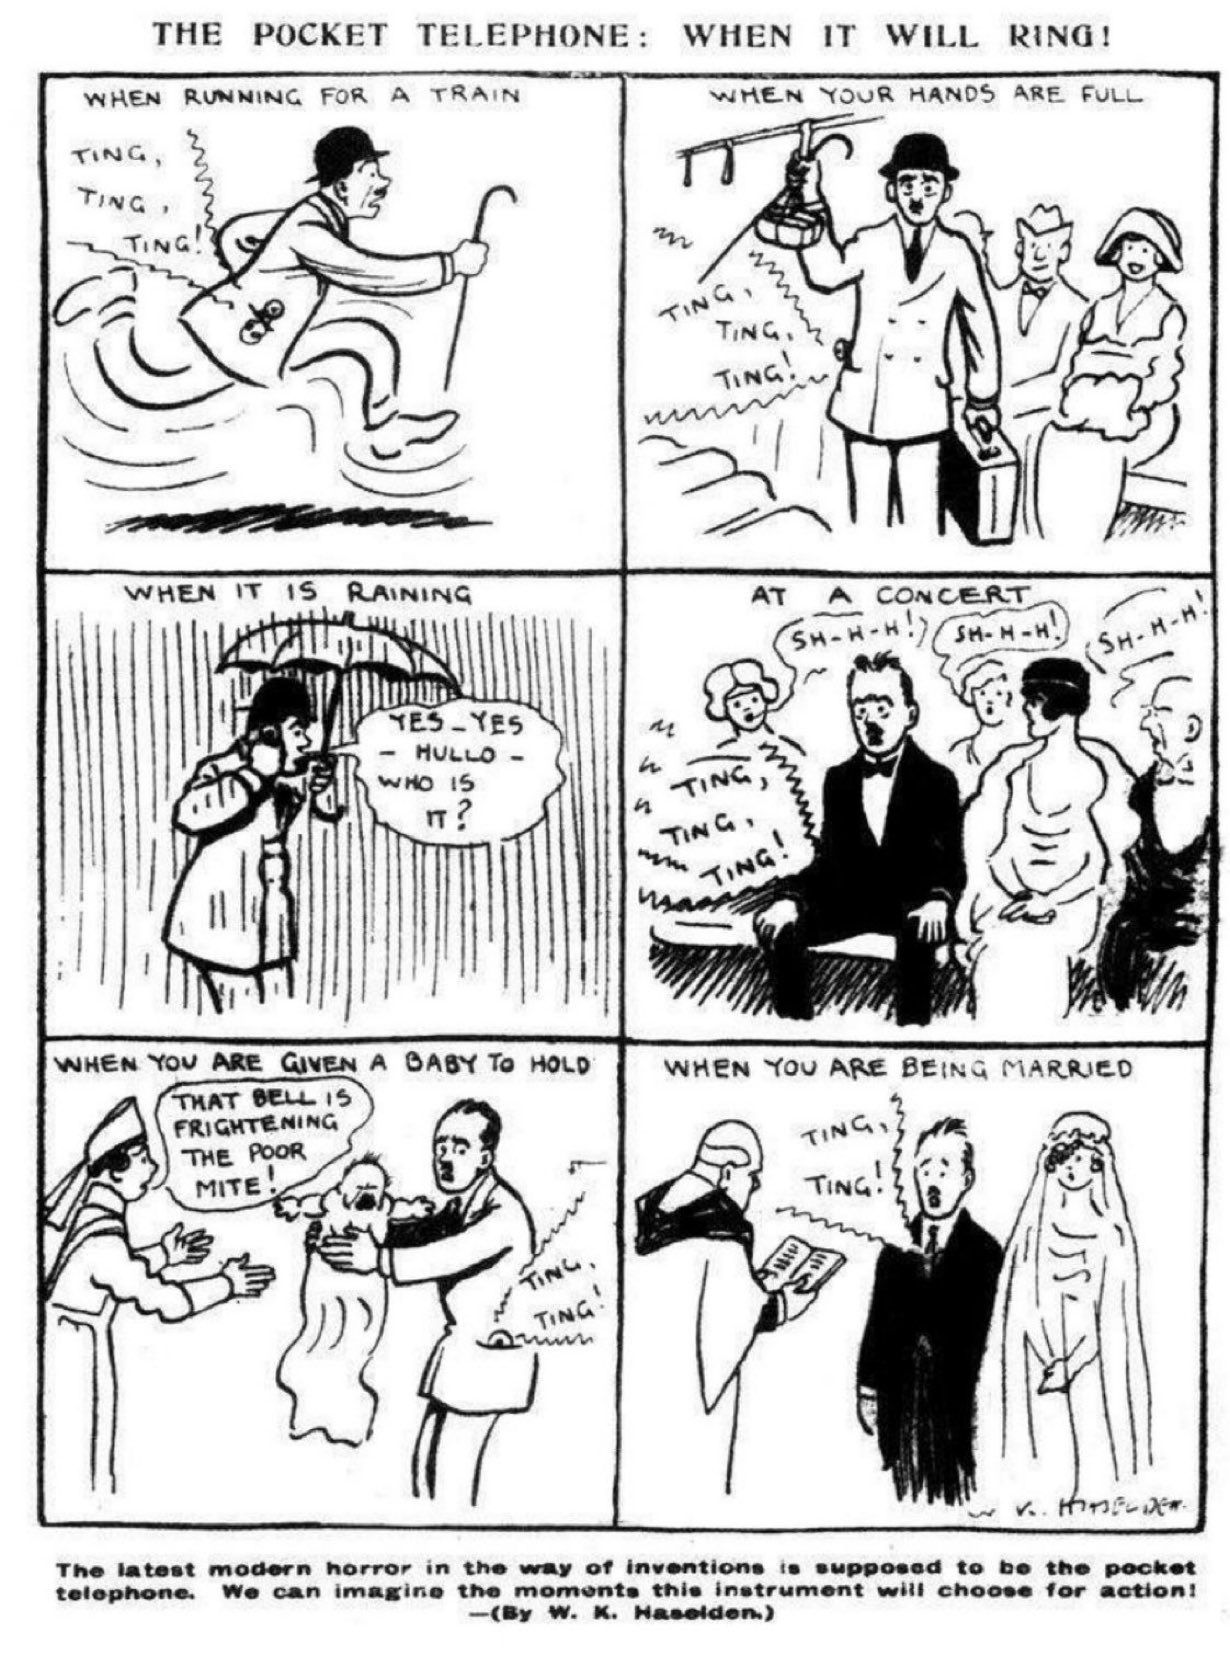 A 1923 prediction of the horror and inconvenience that would occur if anyone invented a mobile phone